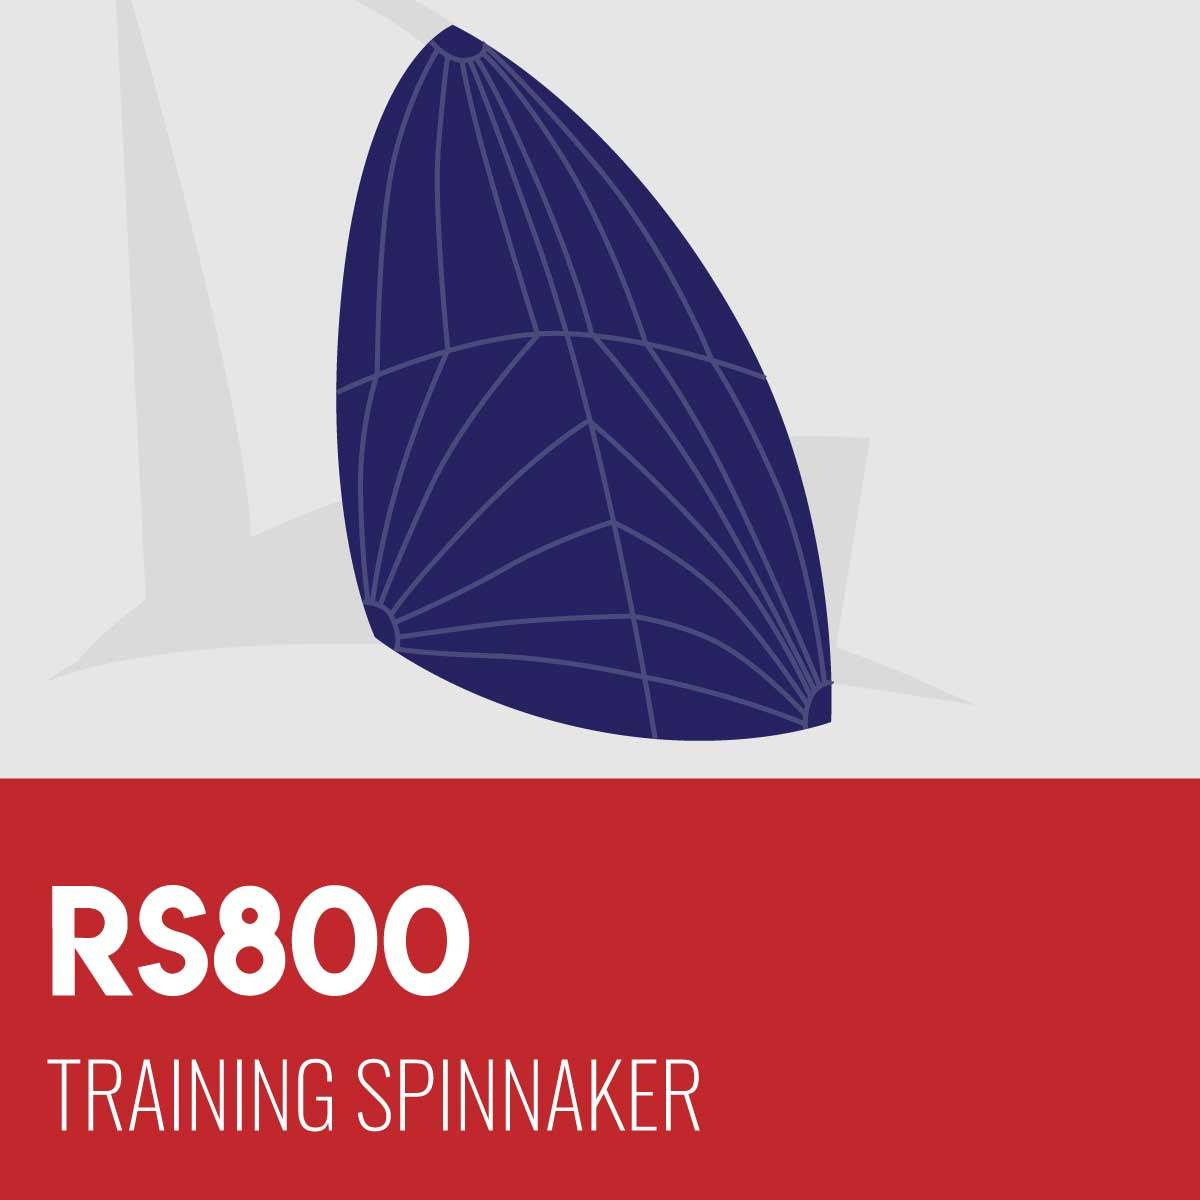 RS800 Training Spinnaker